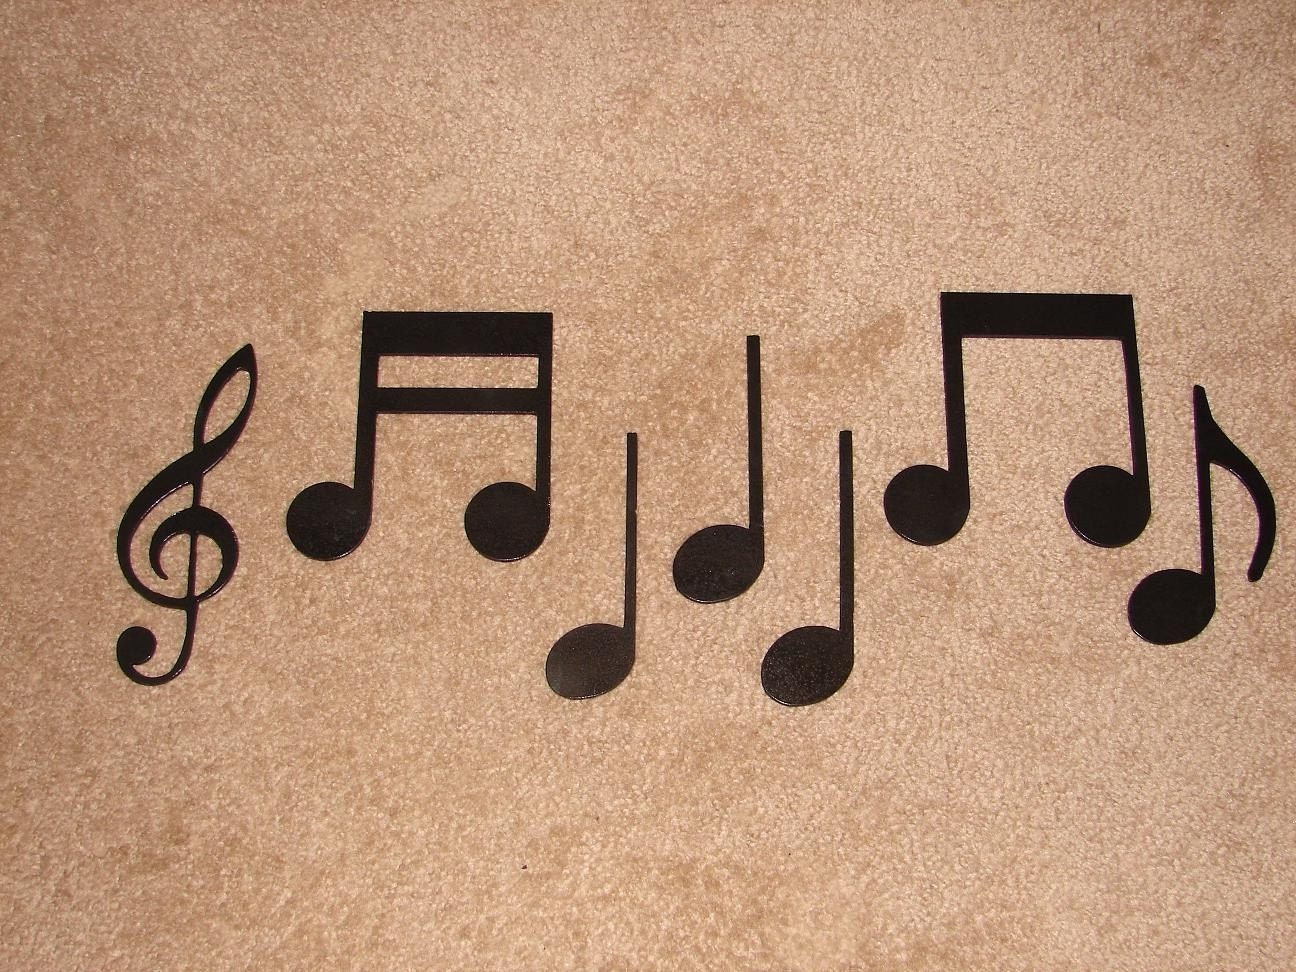 Metal Wall Decor With Musical Notes : Metal wall art decor music notes musical note